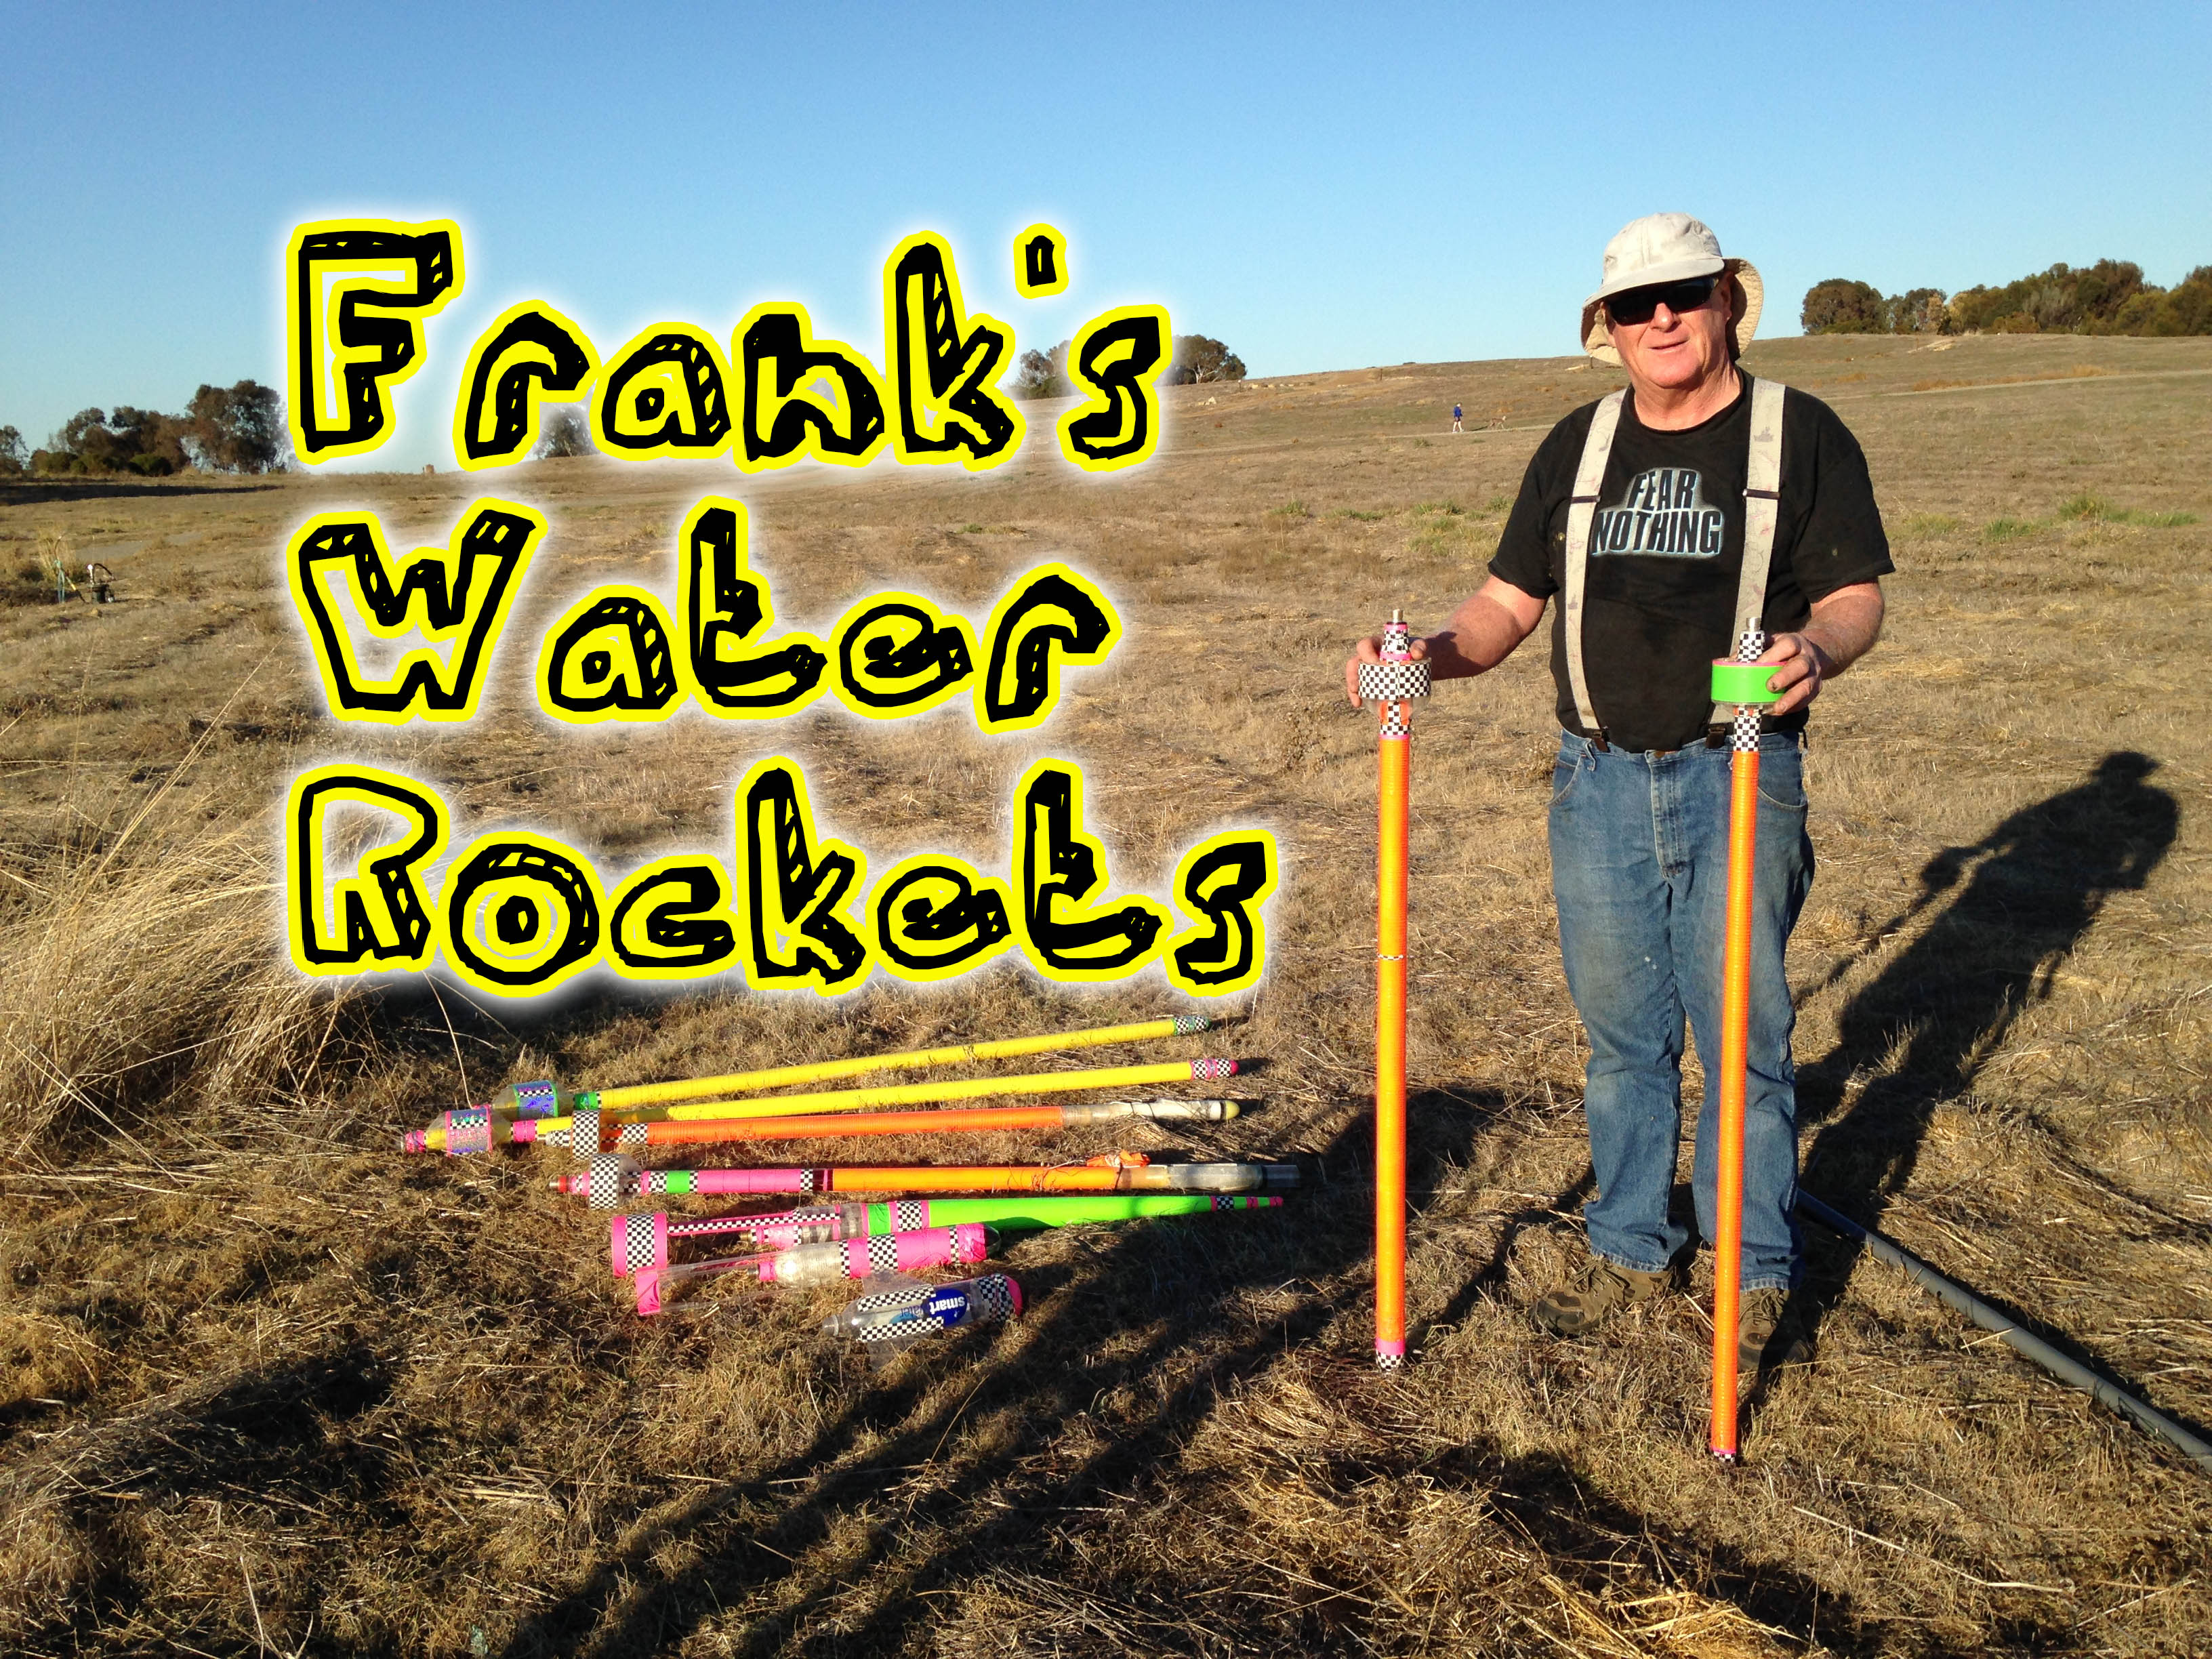 Frank's Water Rocket Overview and Demonstration